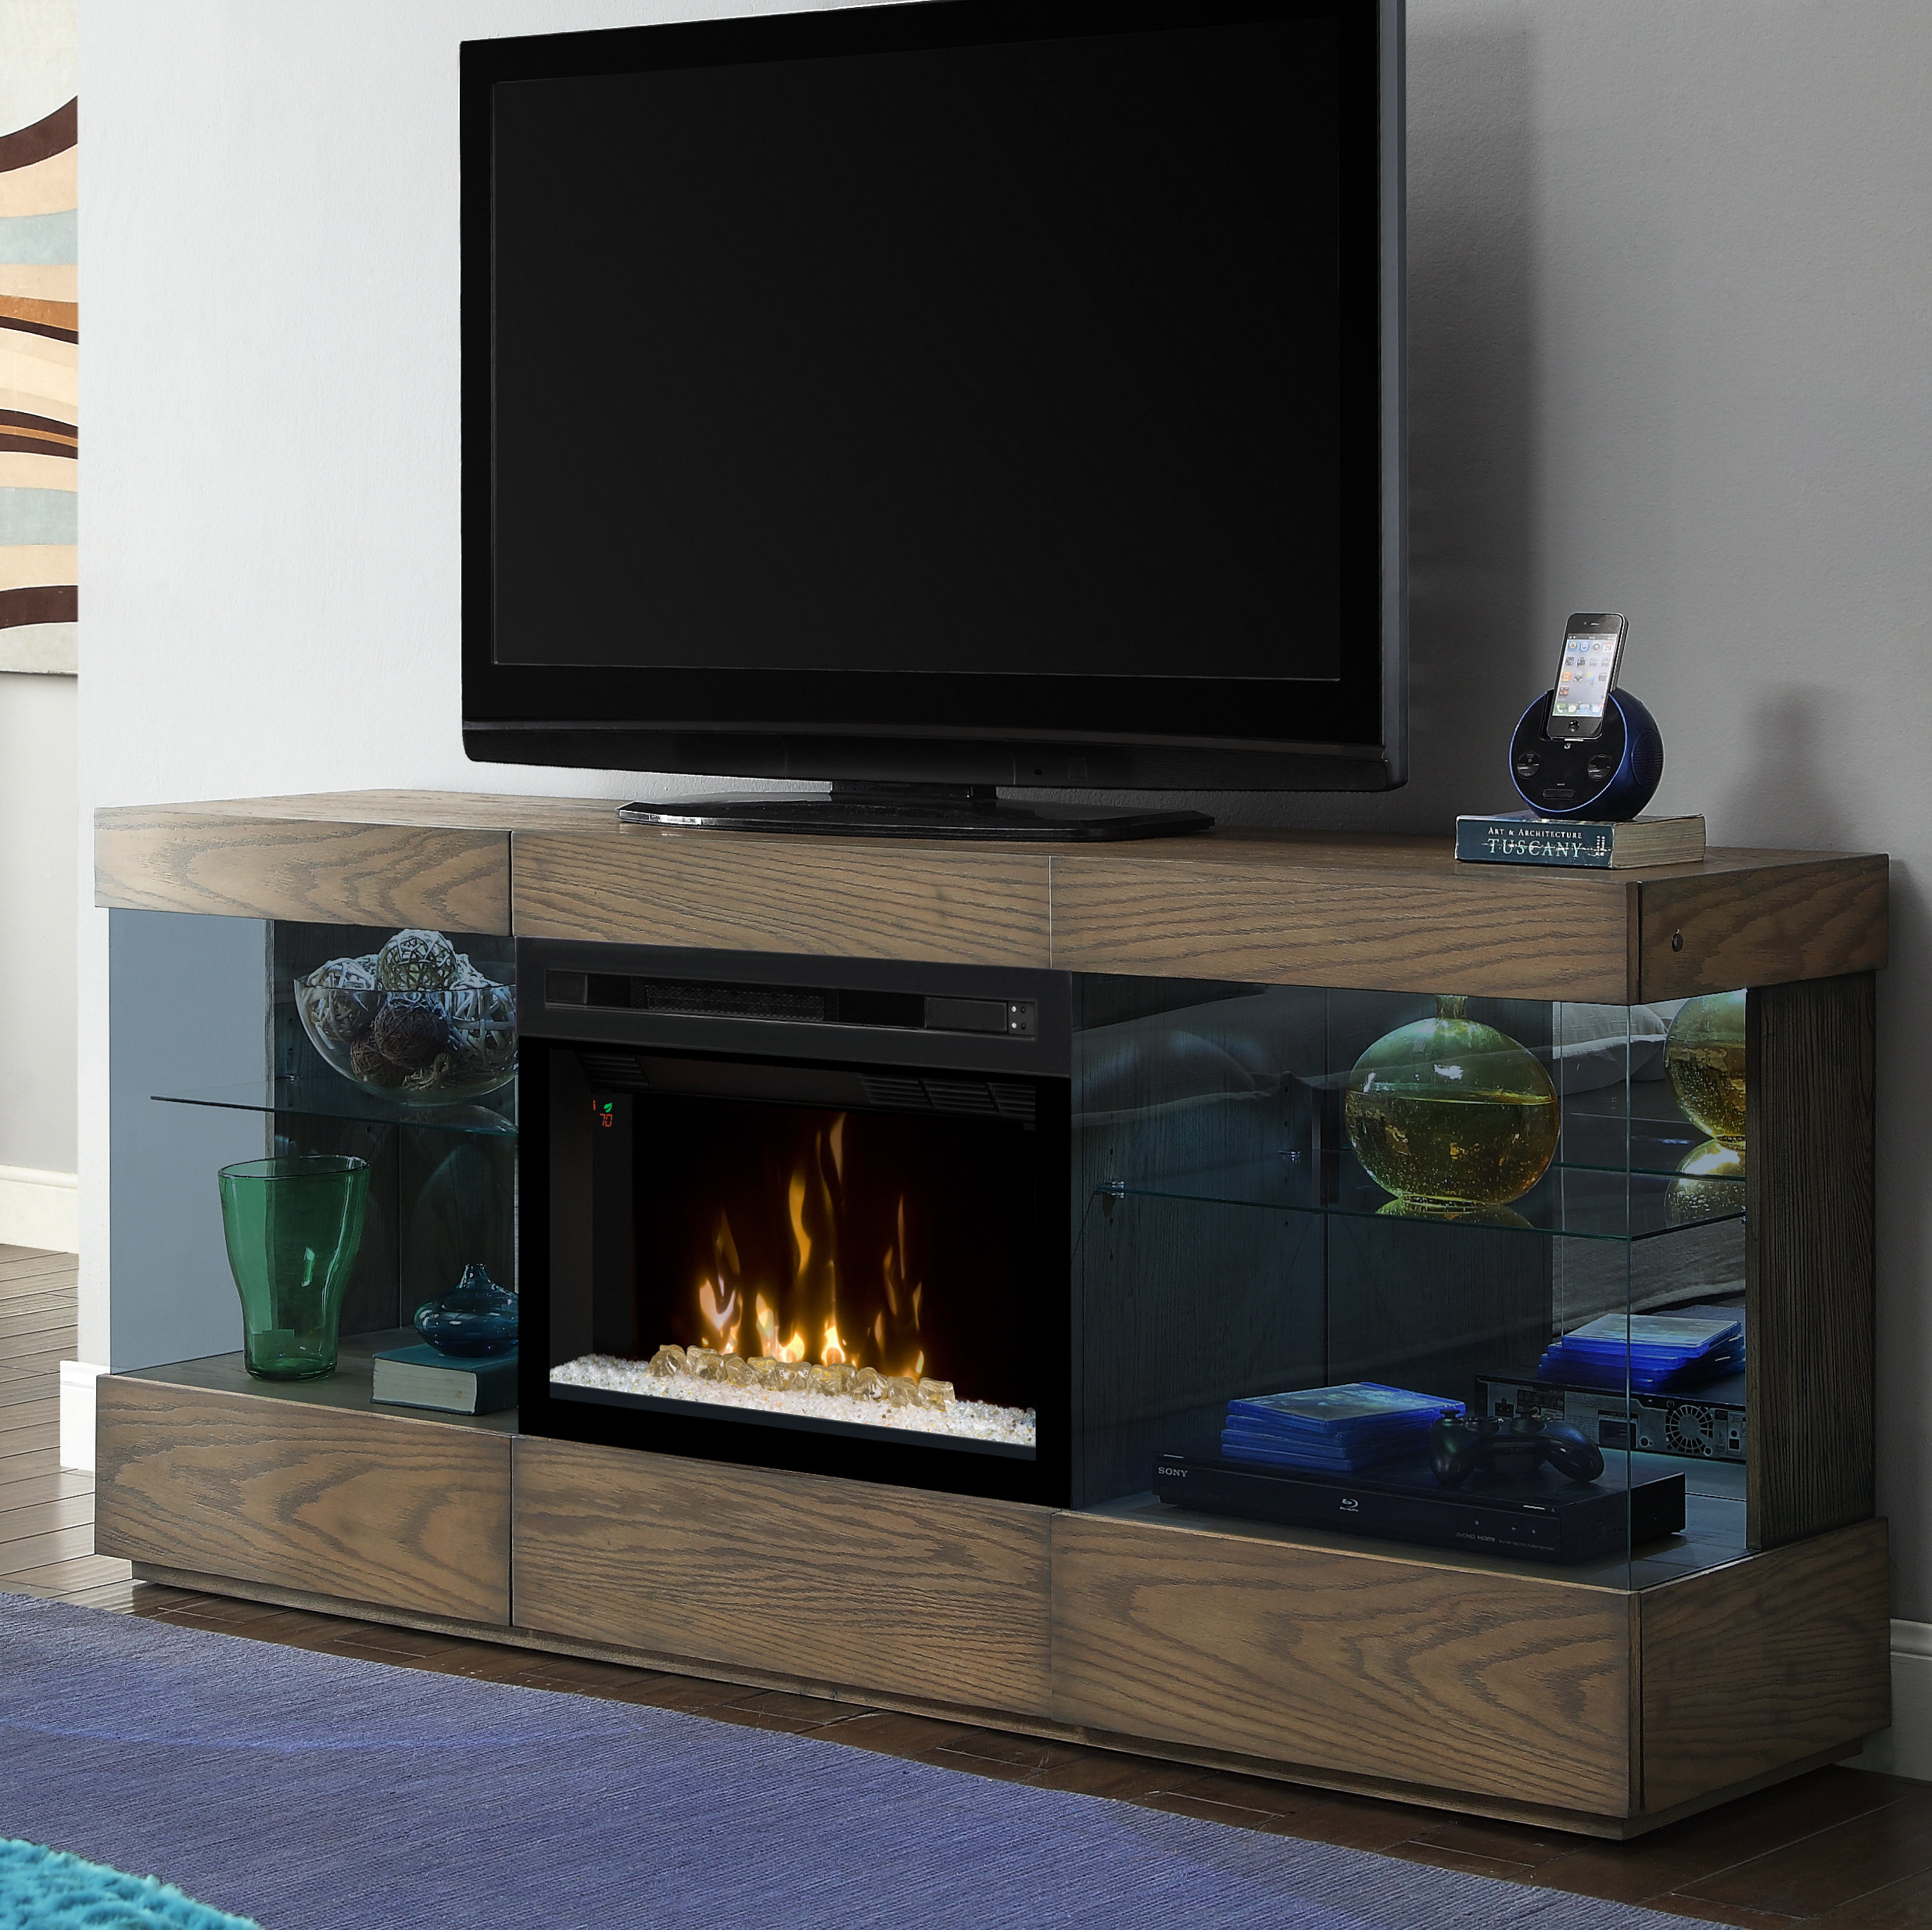 70 Inch And Larger Fireplace Tv Stands You'll Love | Wayfair Inside Wyatt 68 Inch Tv Stands (Photo 11 of 30)